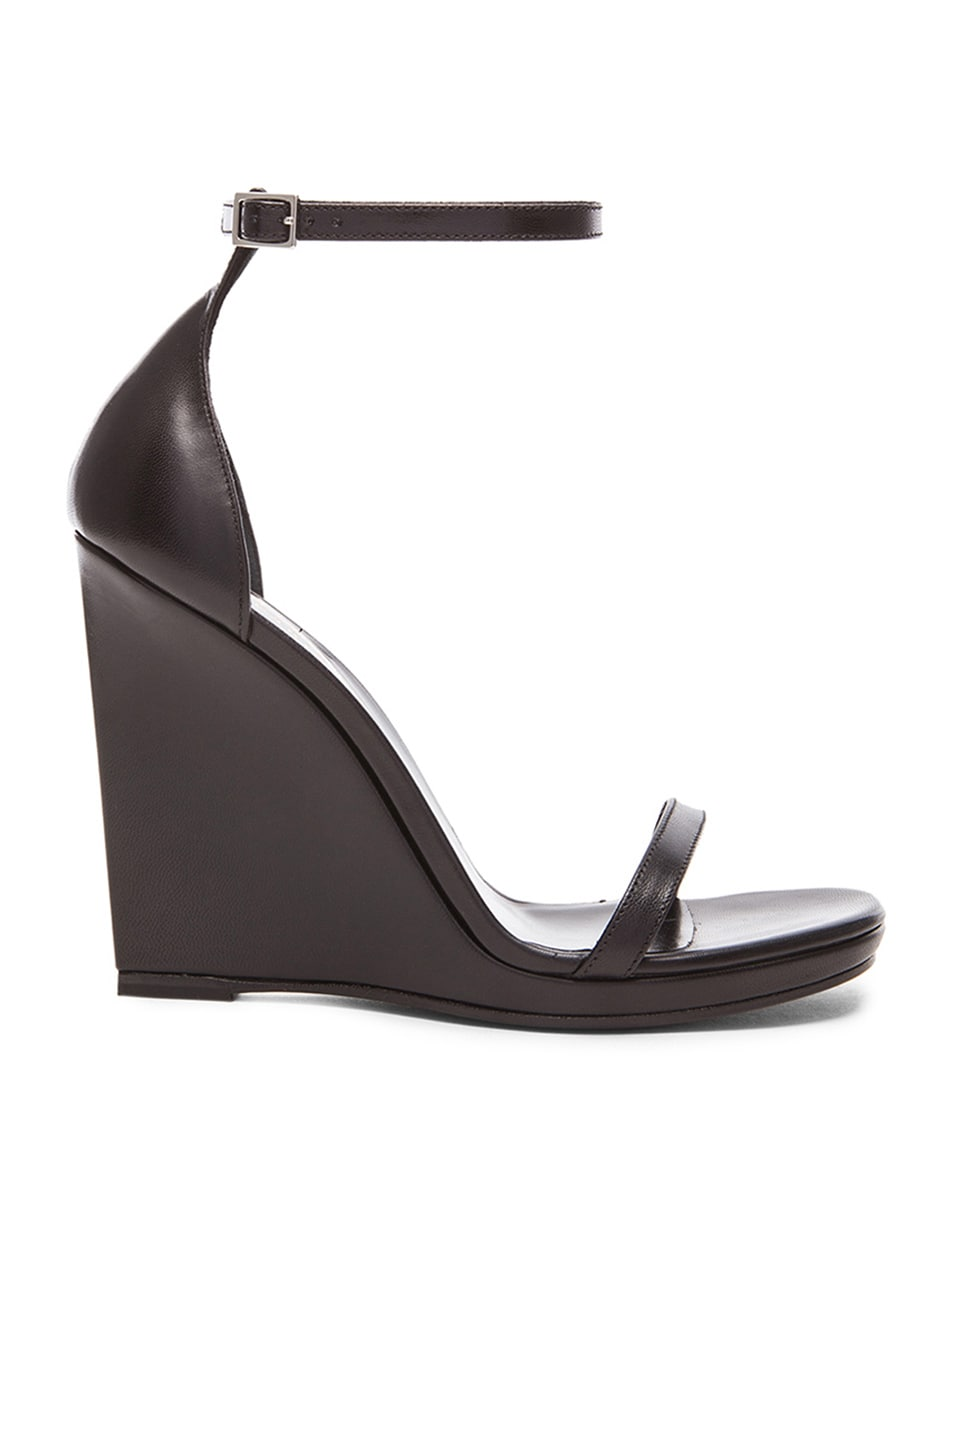 f31aa9e6f00f3 Image 1 of Saint Laurent Jane Leather Wedge Sandals in Black